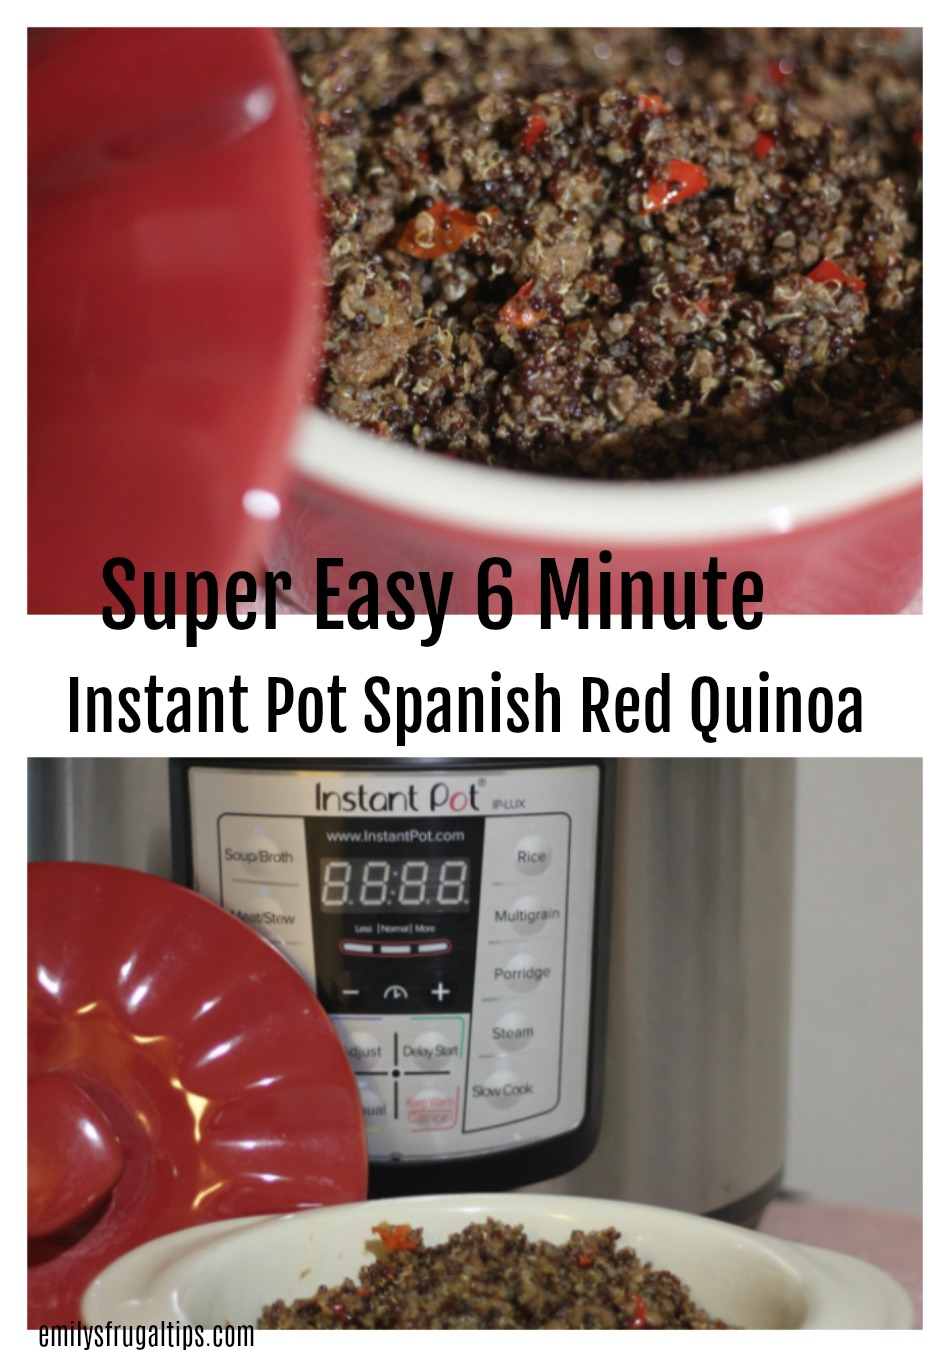 Instant Pot Spanish Red Quinoa